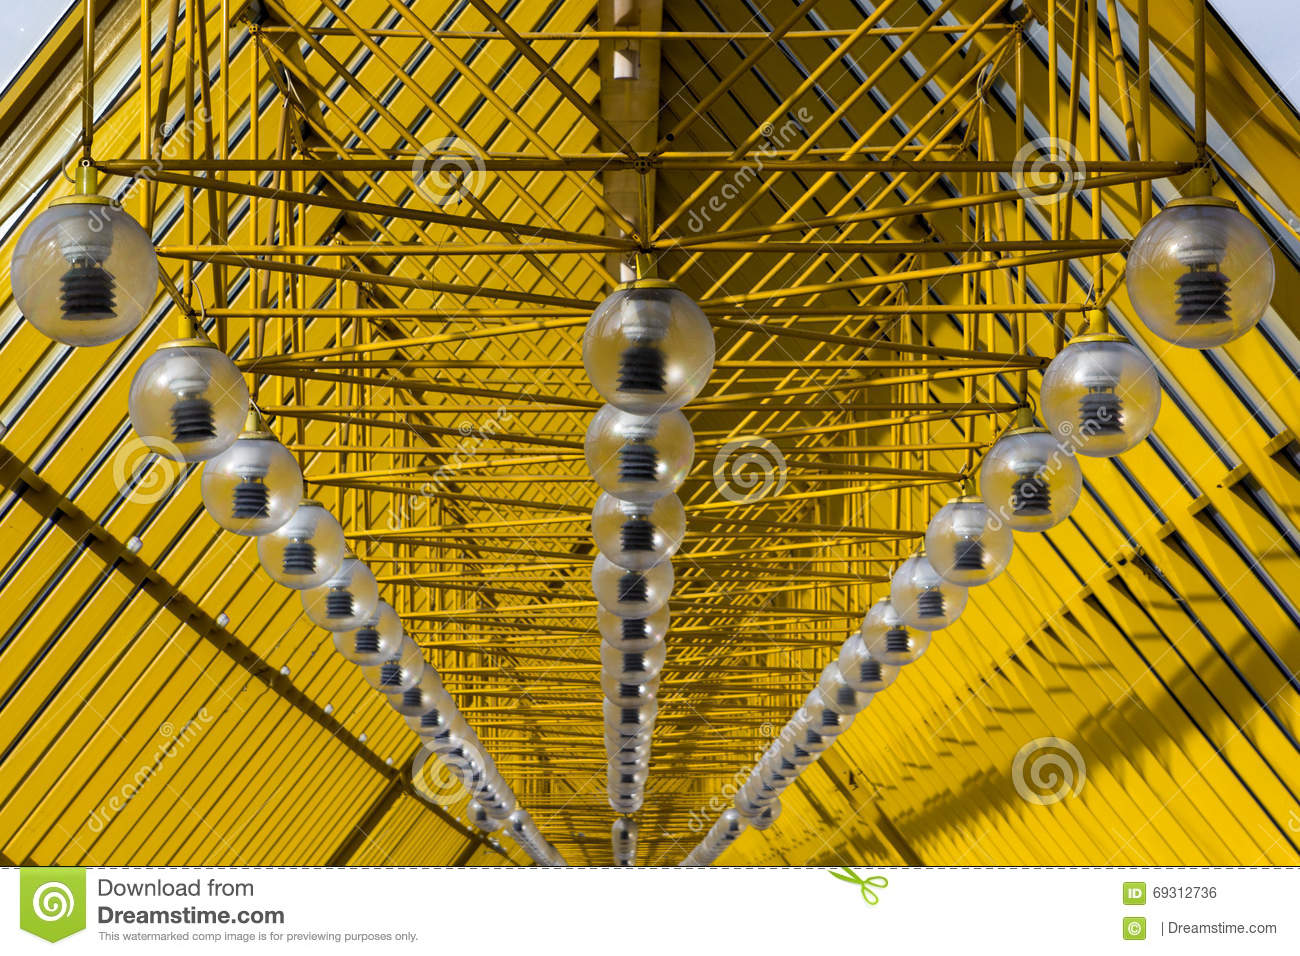 Yellow abstract ceiling. modern architecture with a rhythmic, diagonal forms